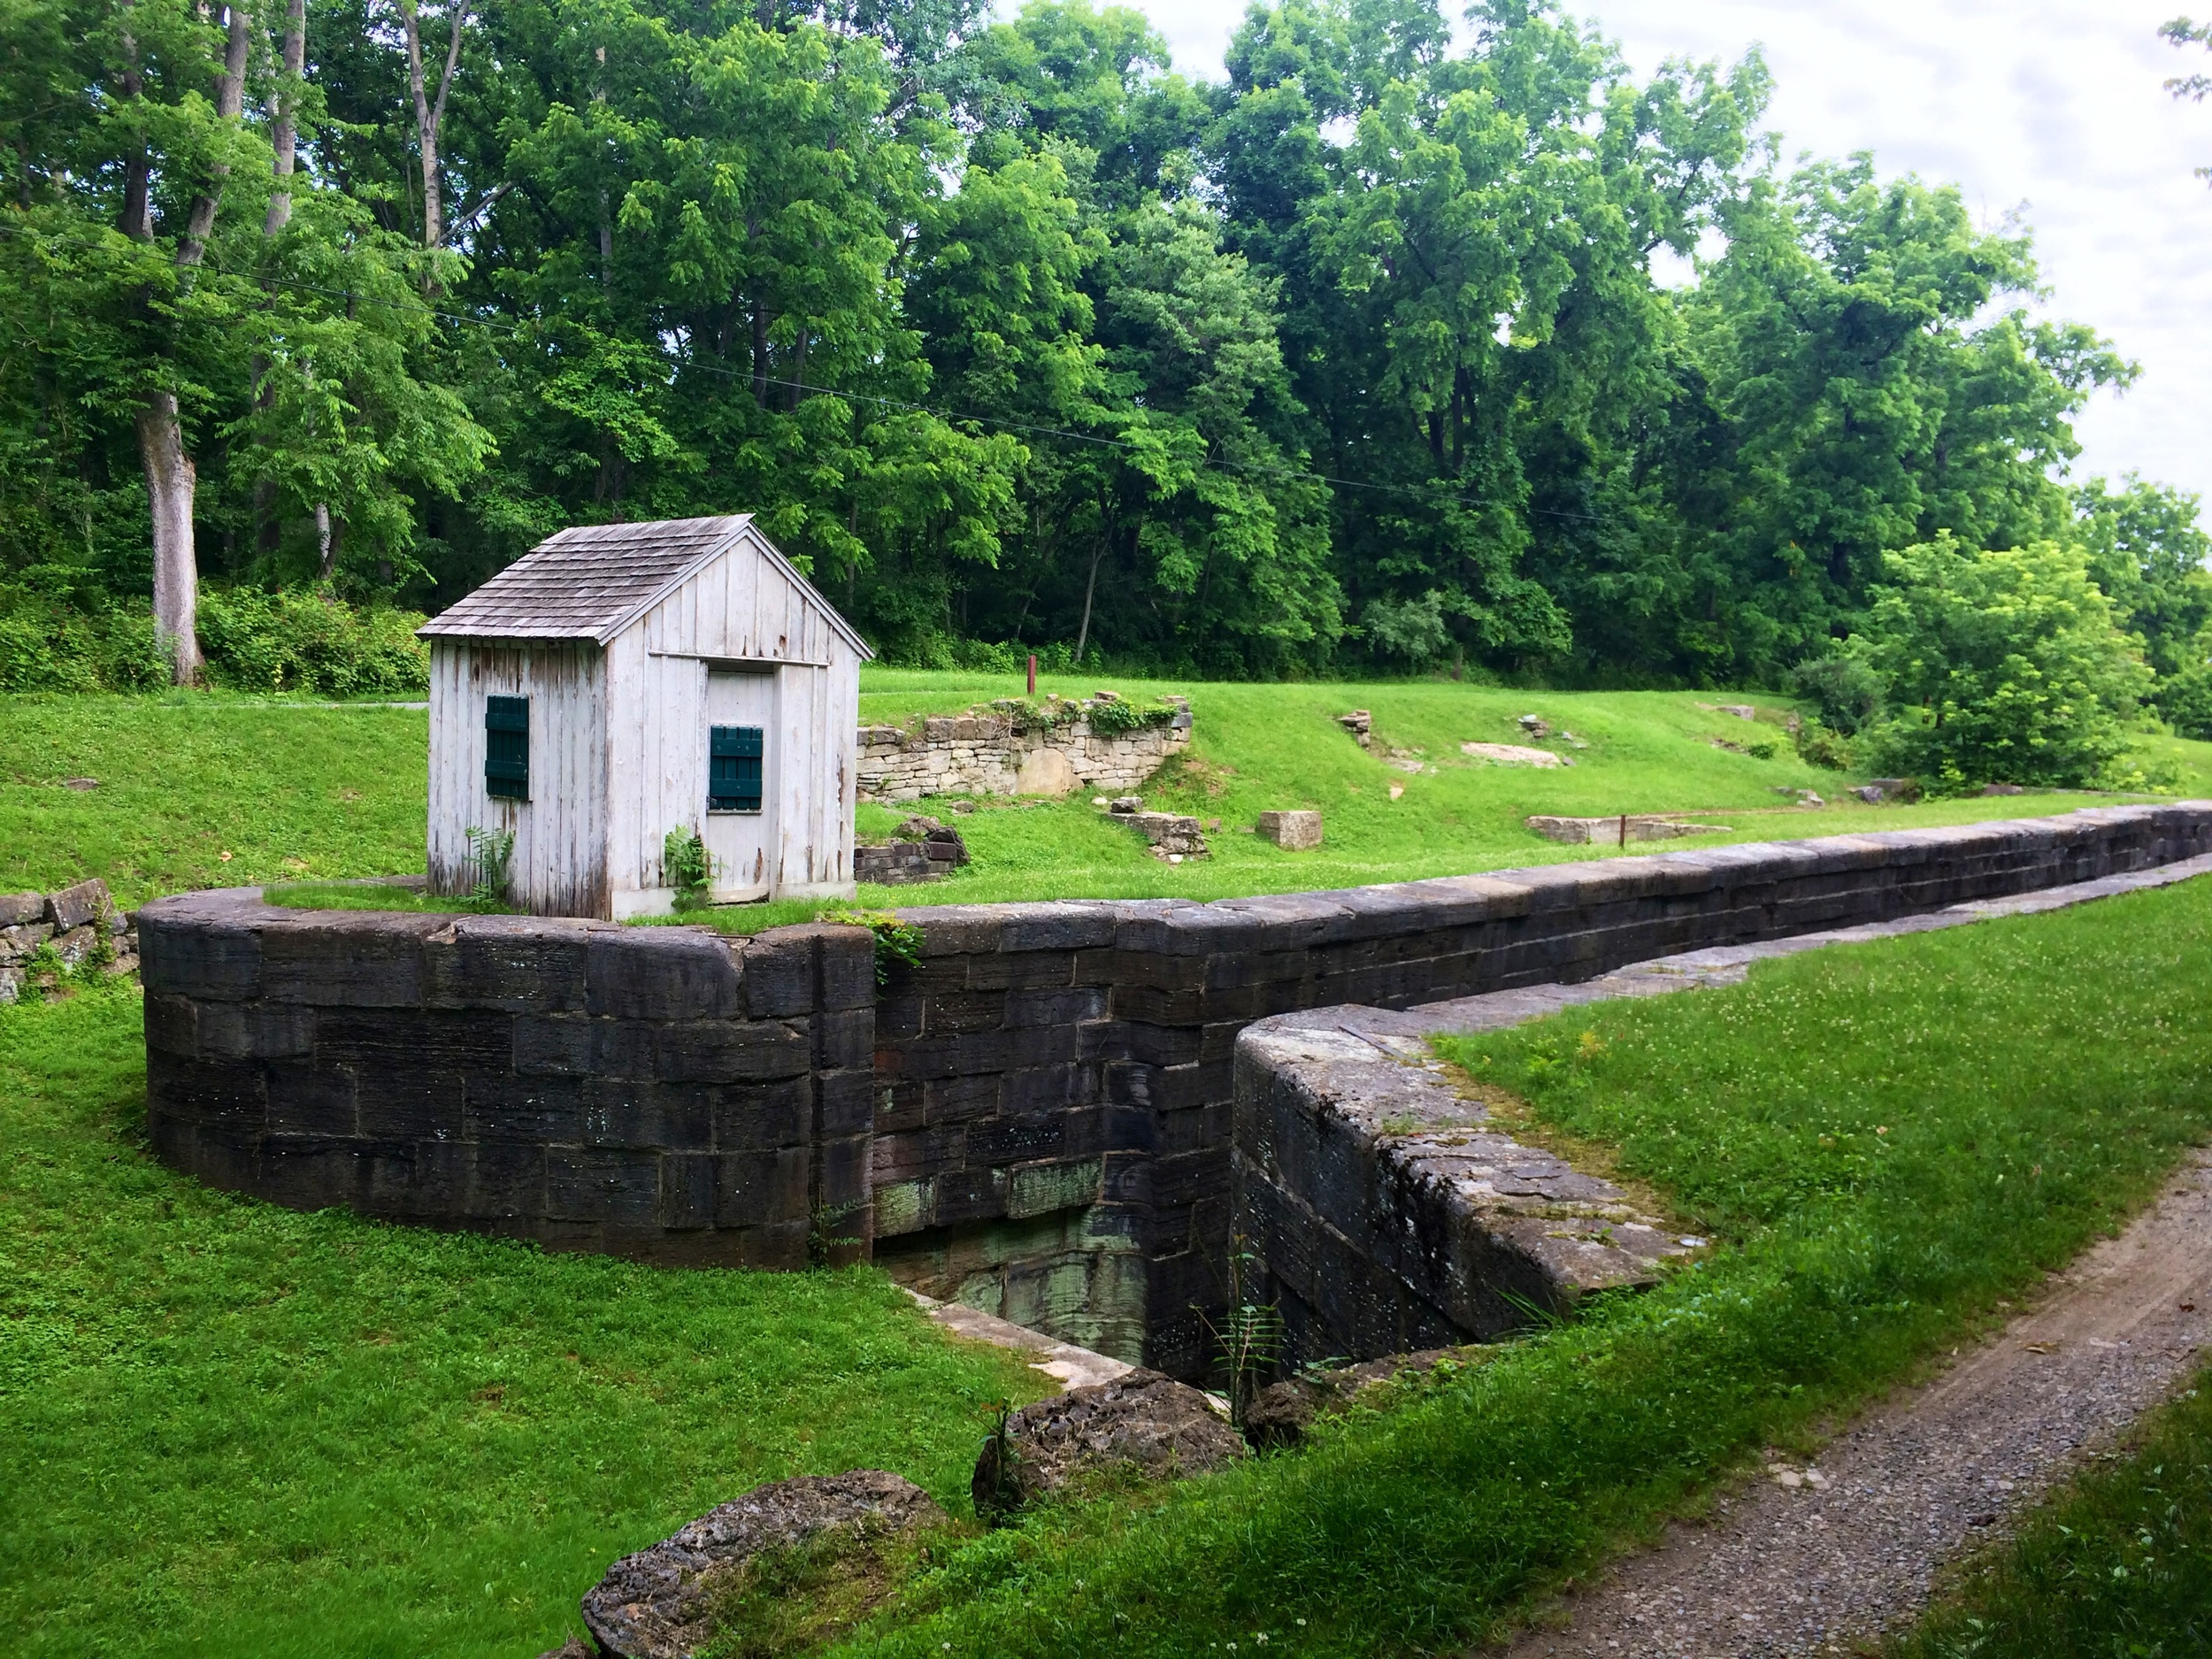 The old canal along the Potomac River